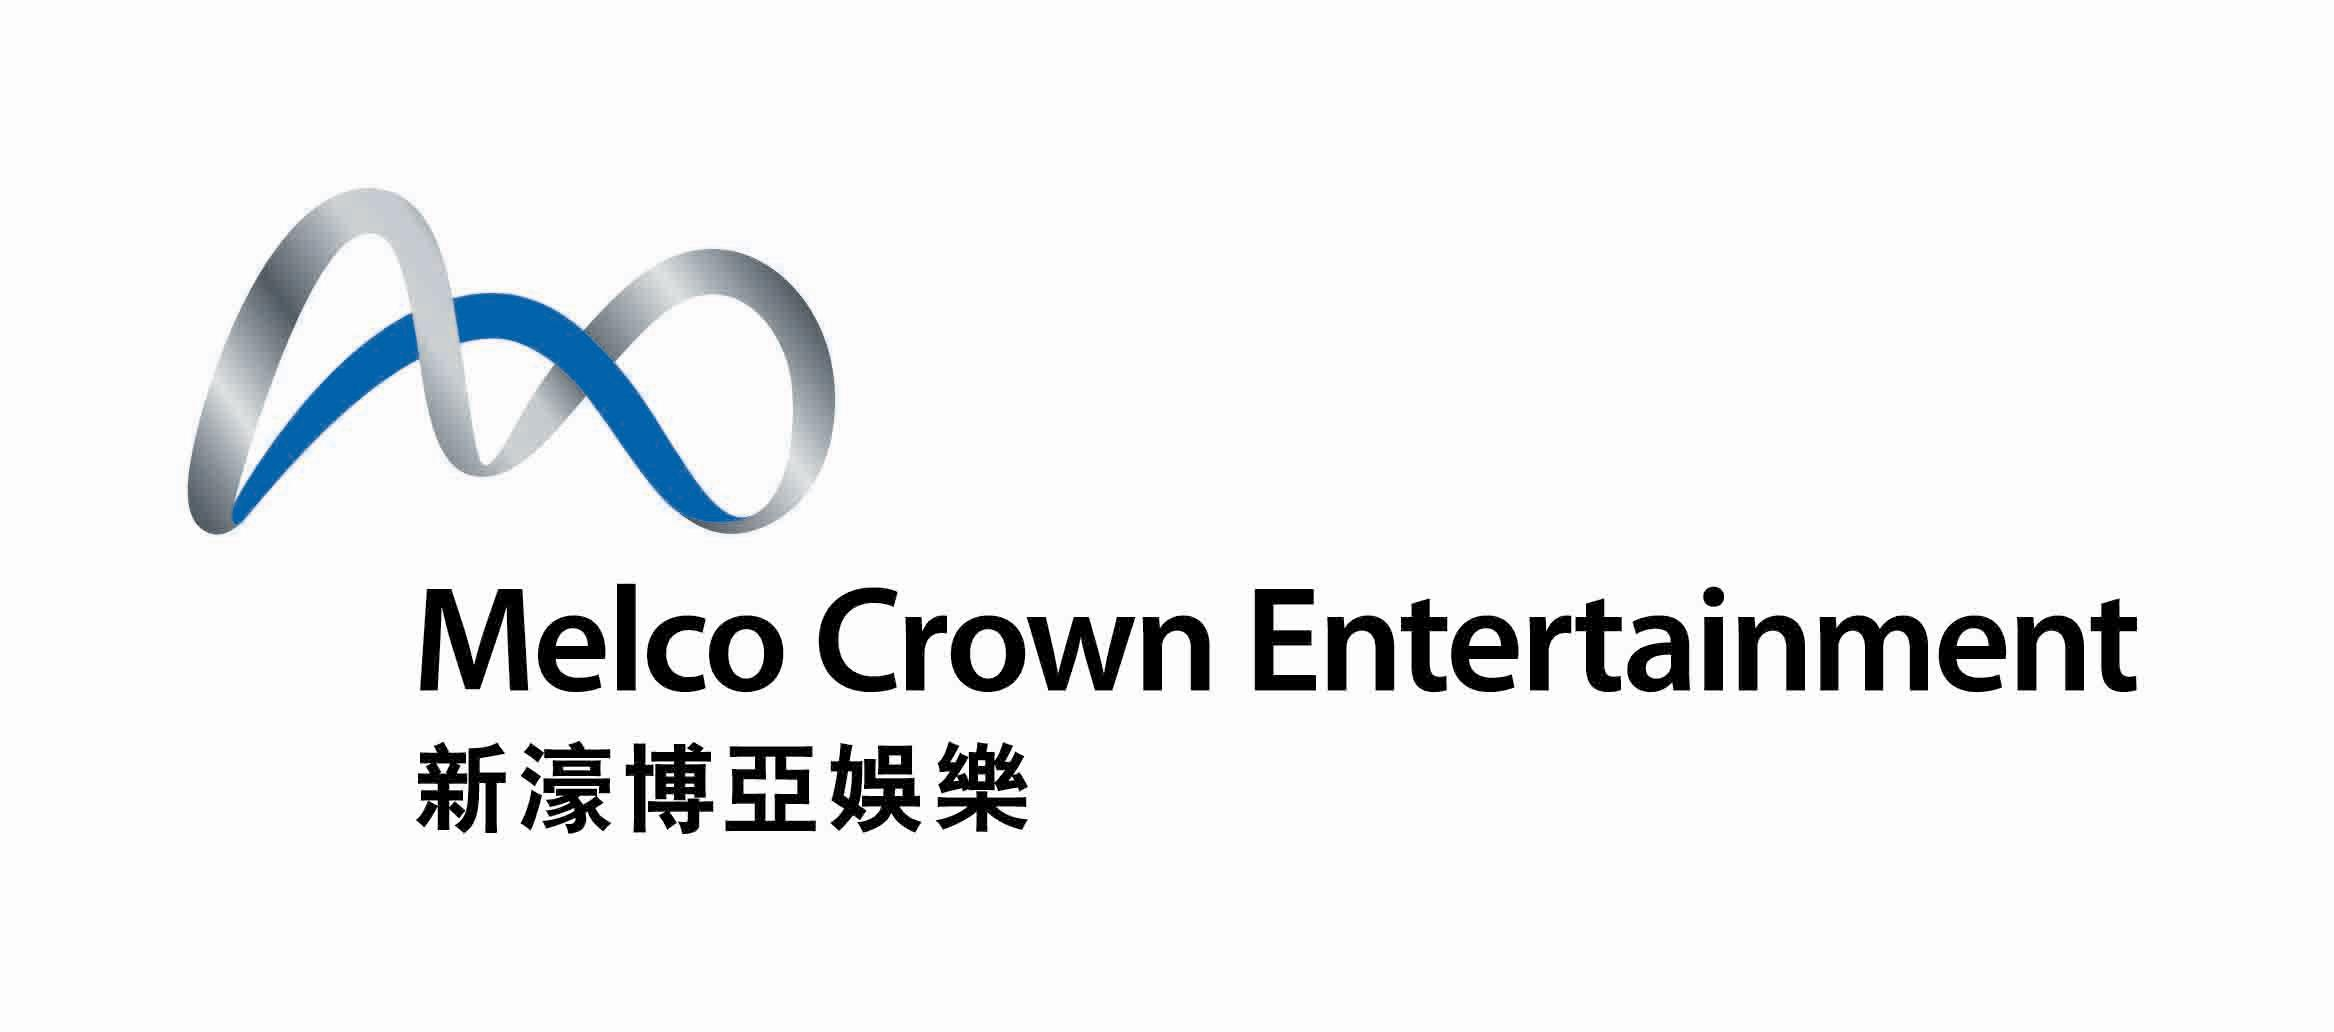 Melco Crown Entertainment Ltd (ADR) logo